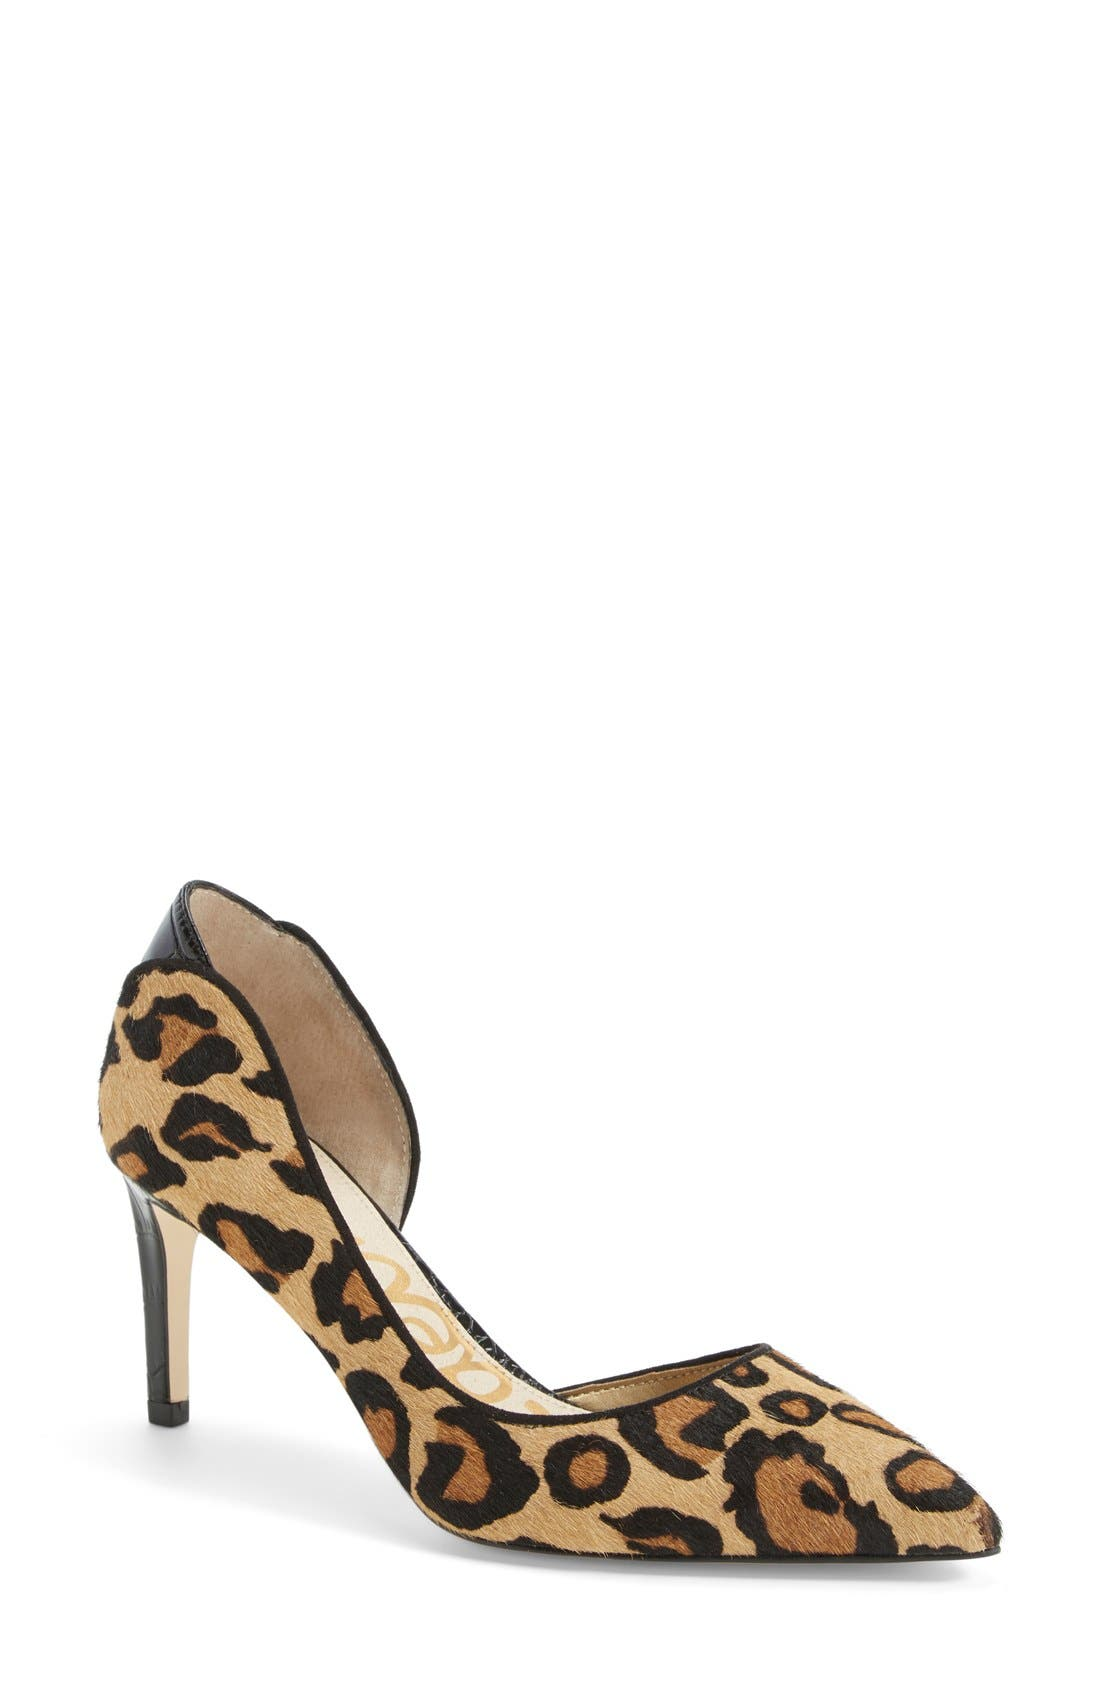 Main Image - Sam Edelman 'Onyx' Half d'Orsay Pointy Toe Pump (Women)